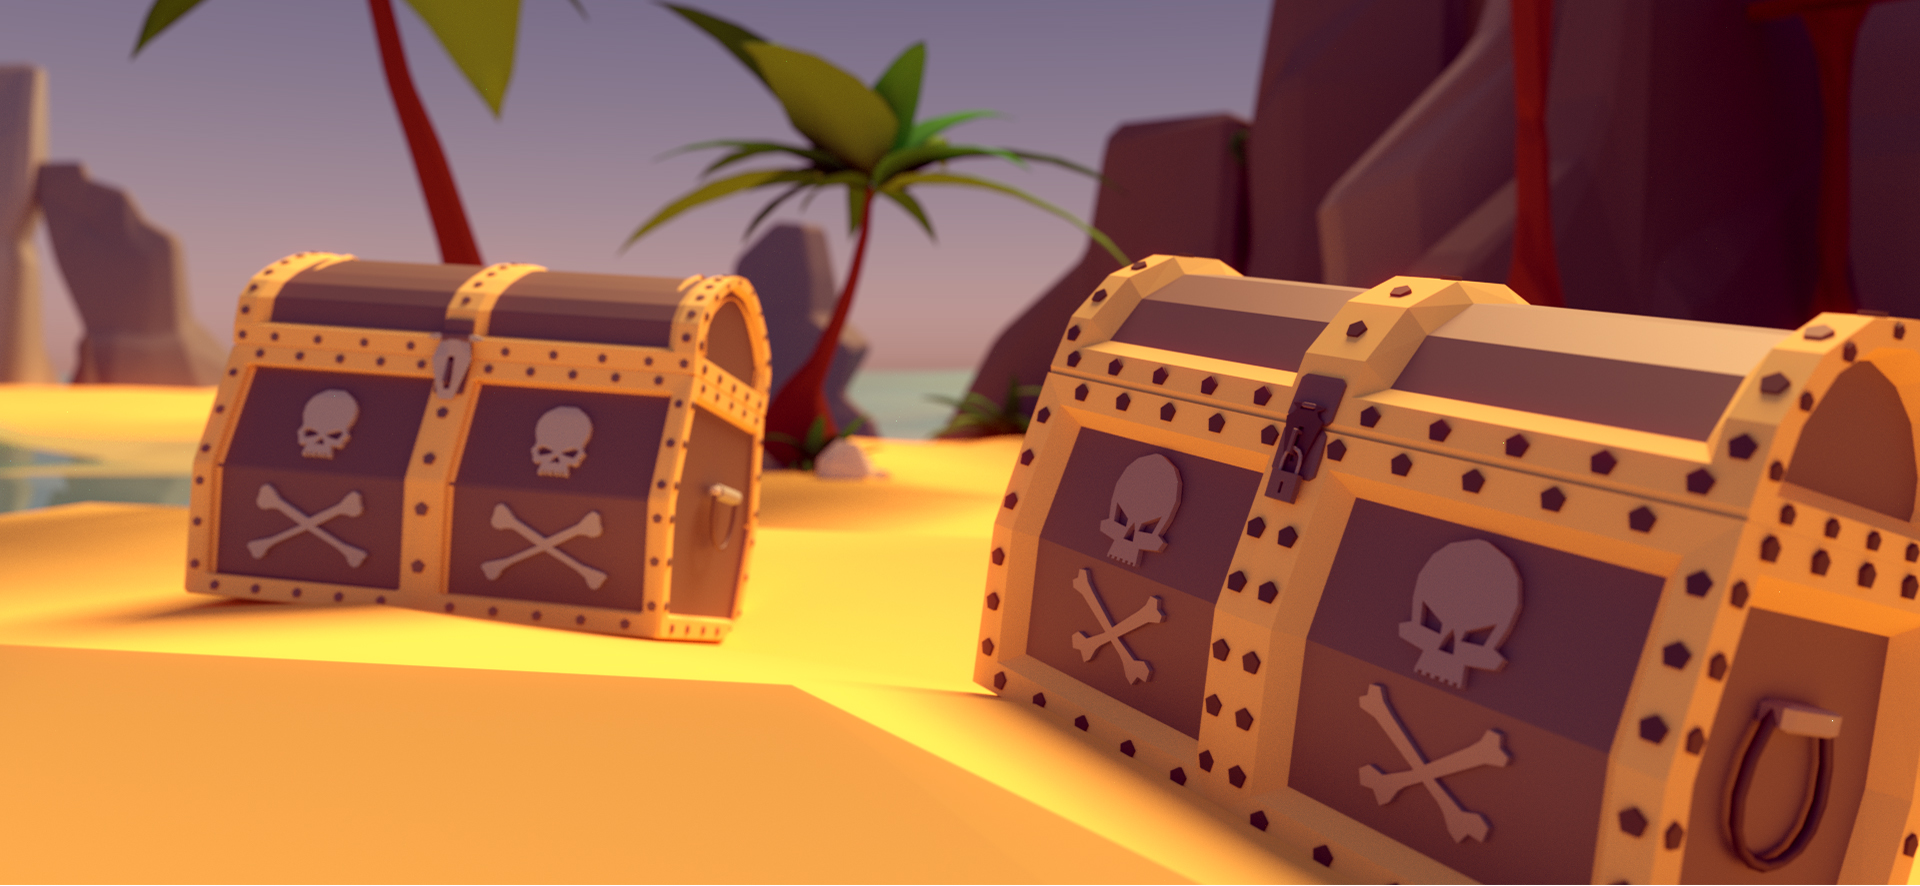 Tutorial the low poly pirate scene blendernation tutorial the low poly pirate scene baditri Choice Image